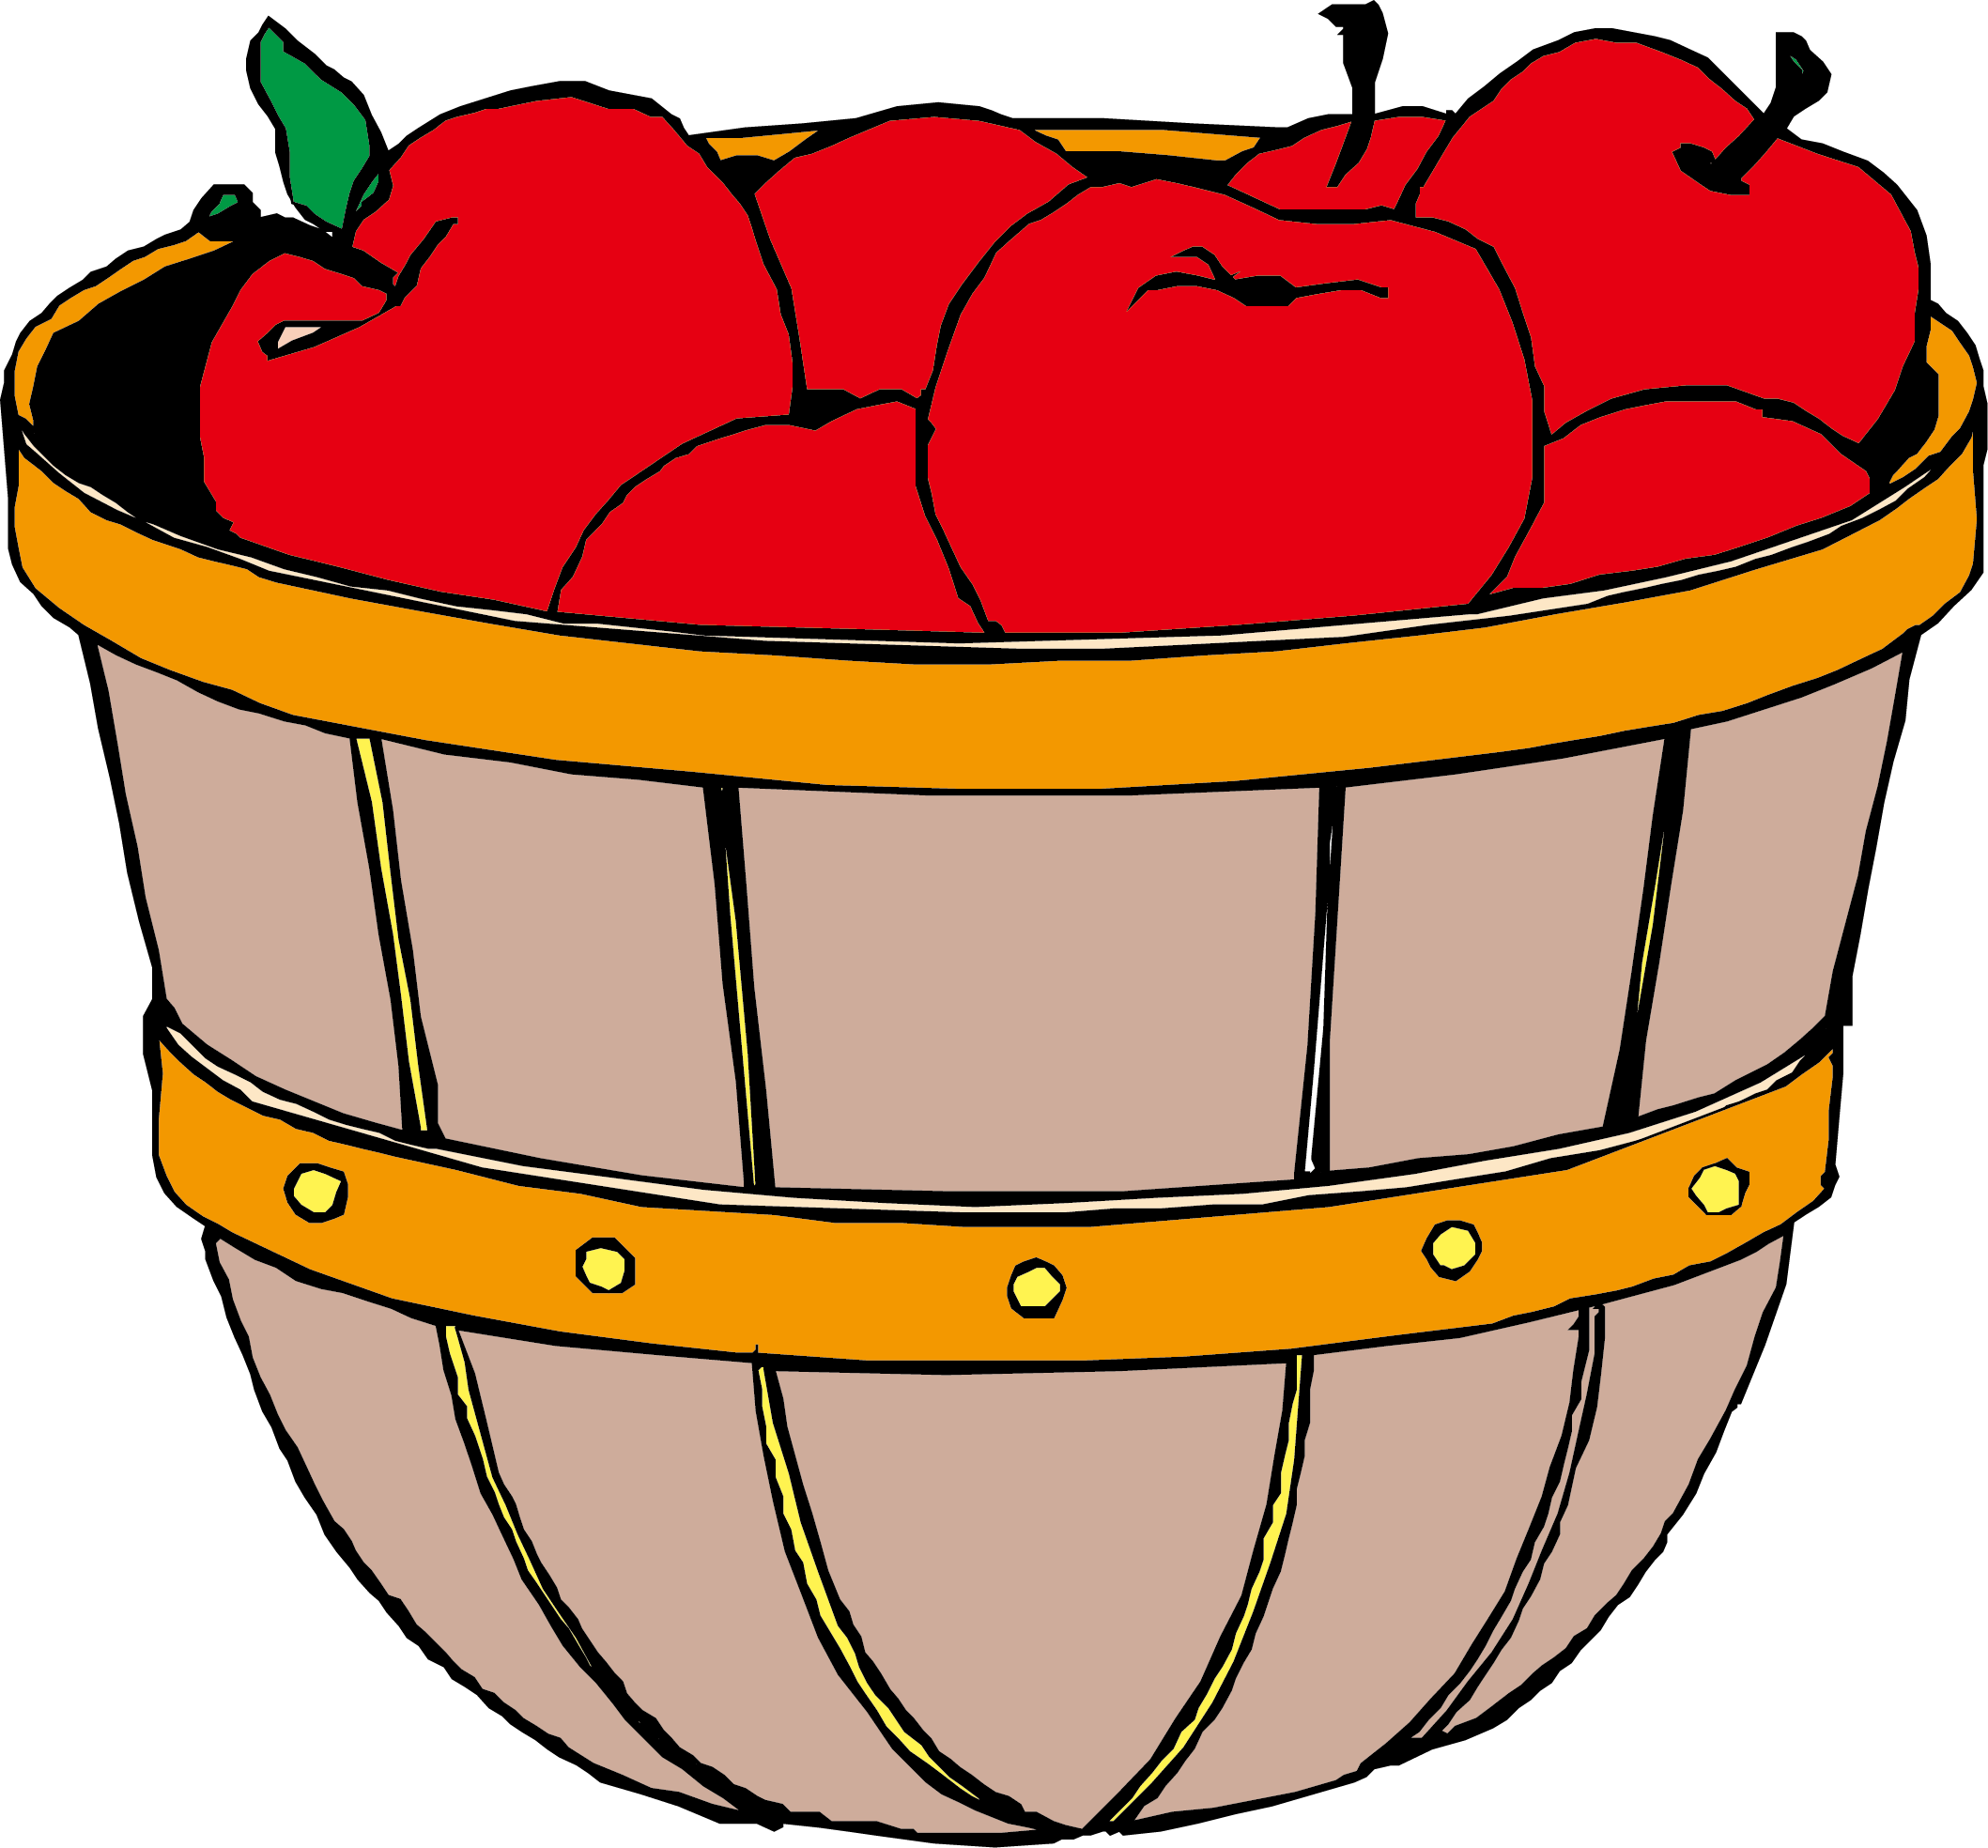 Candied apples png. Apple oka orchard drawing